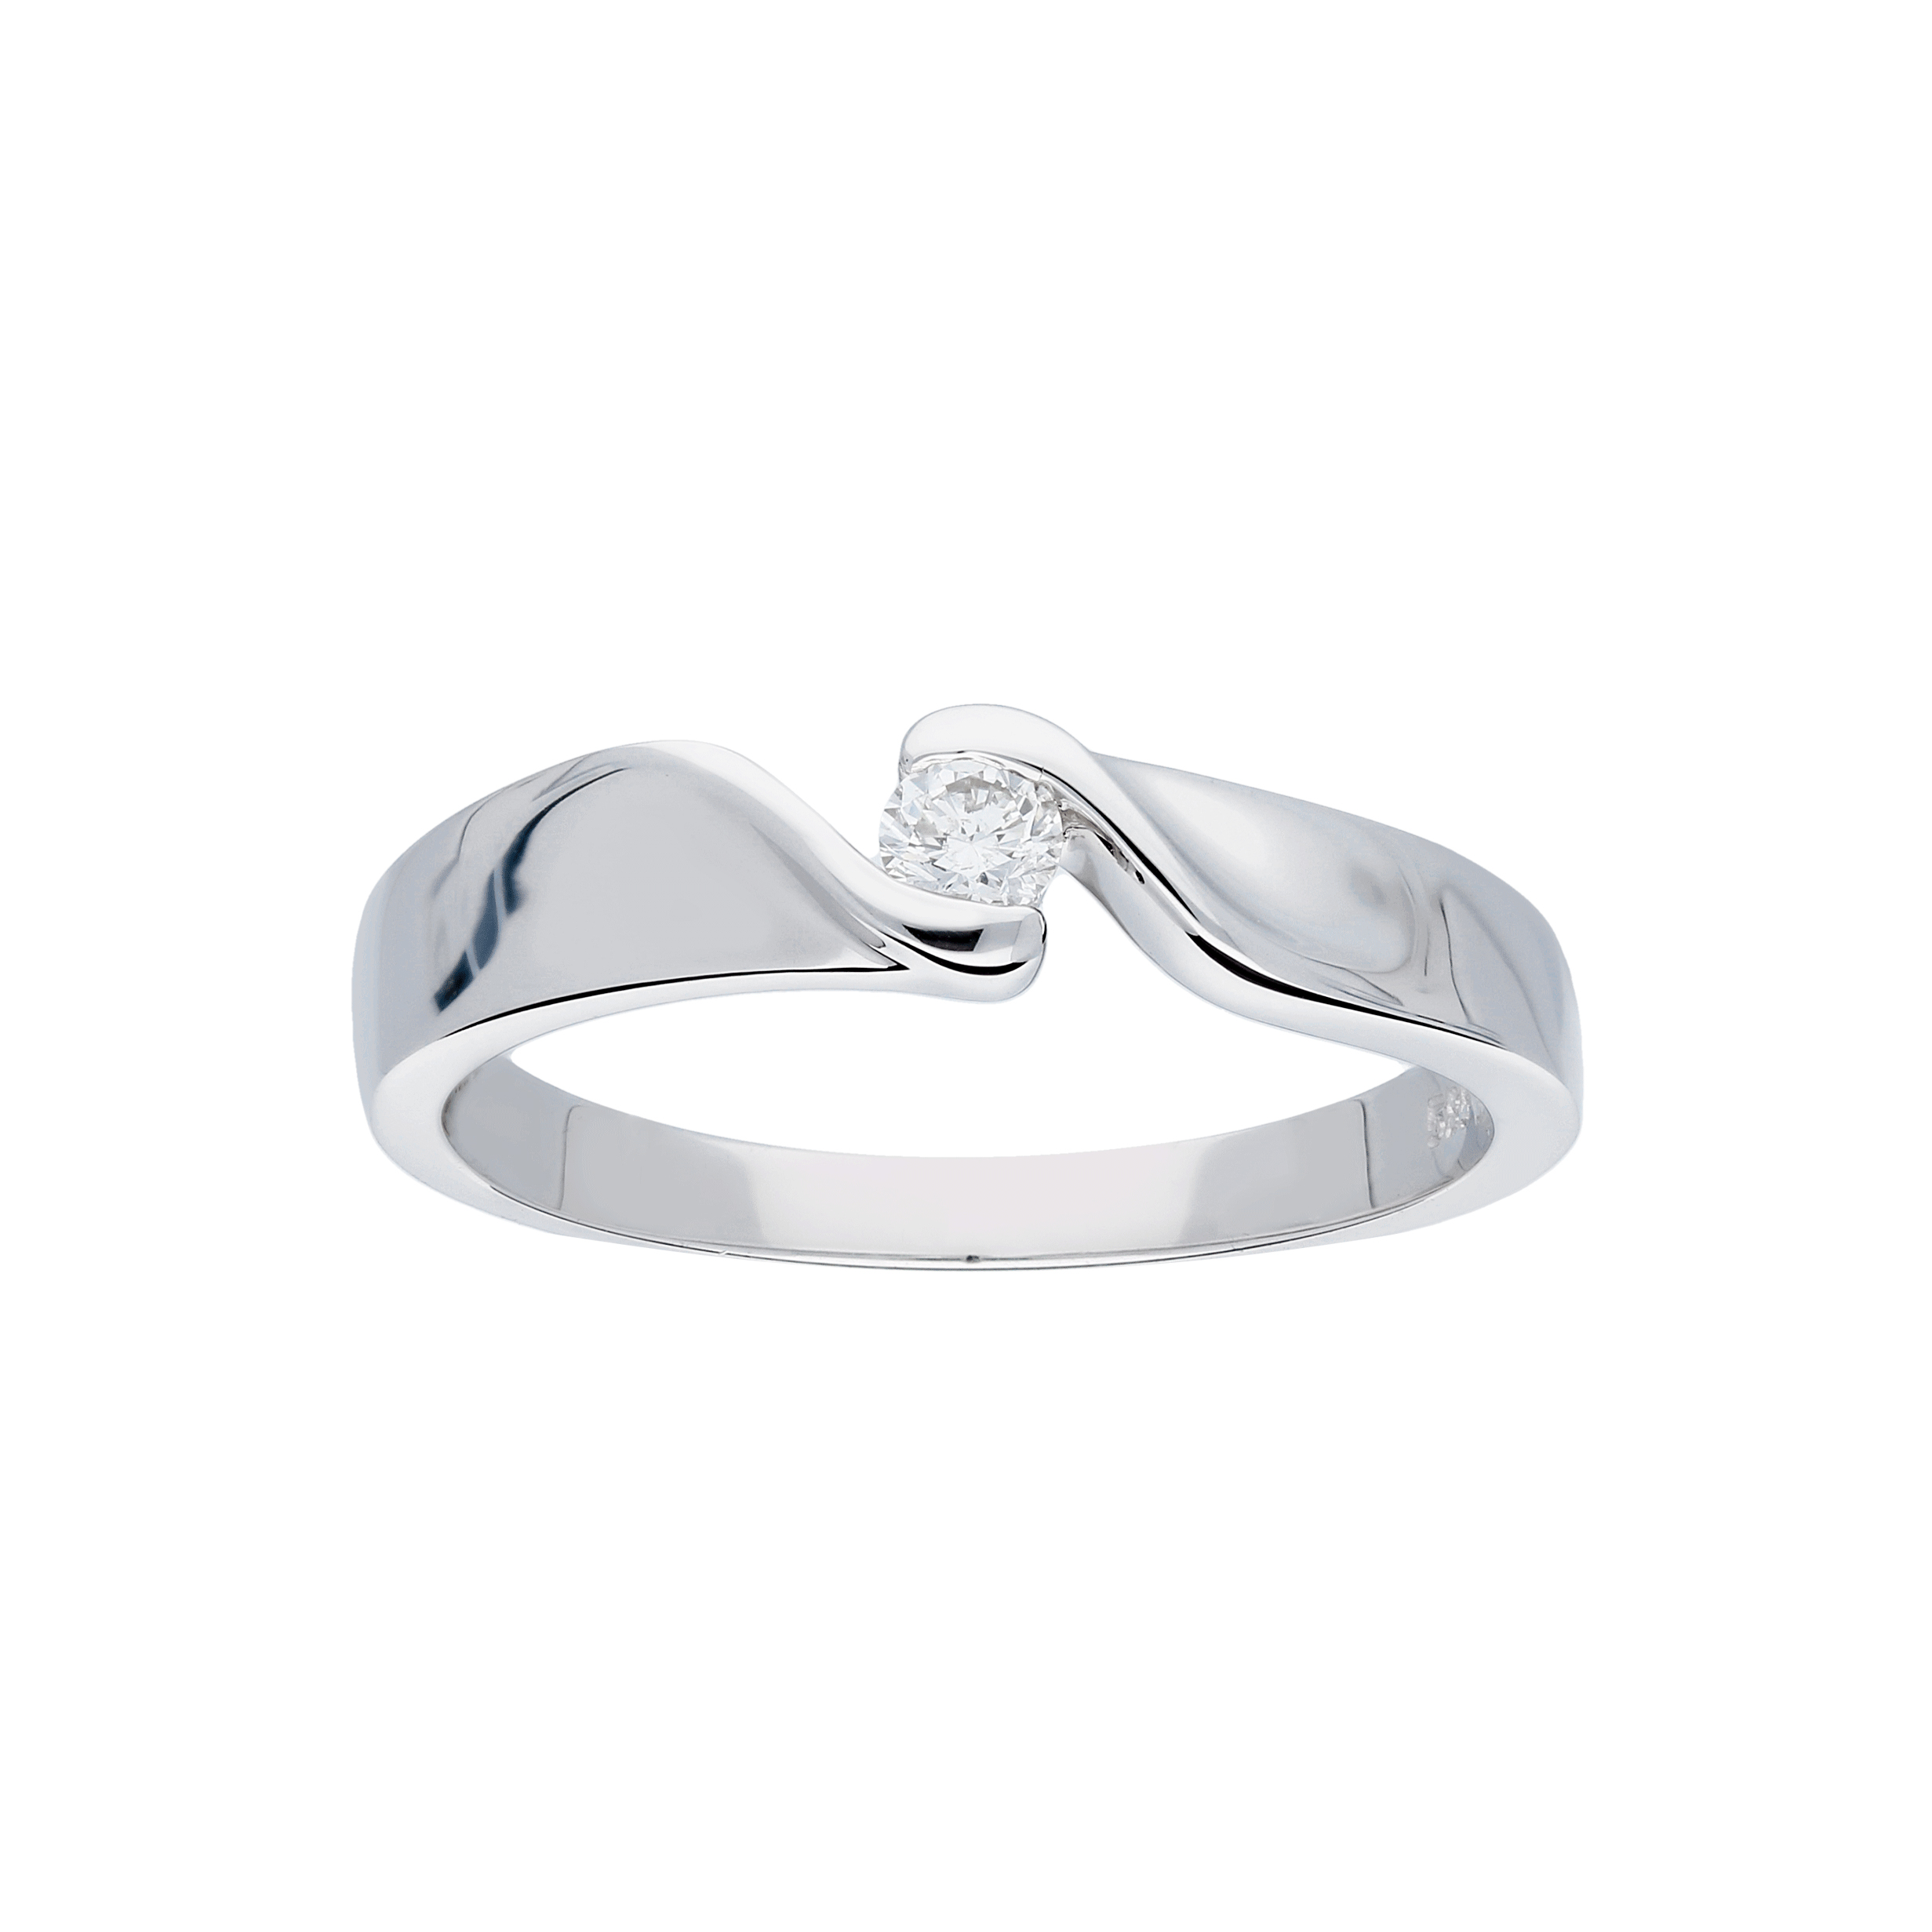 Glow Witgouden Ring Glanzend Diamant 1 0.1ct G si 214.3014.56